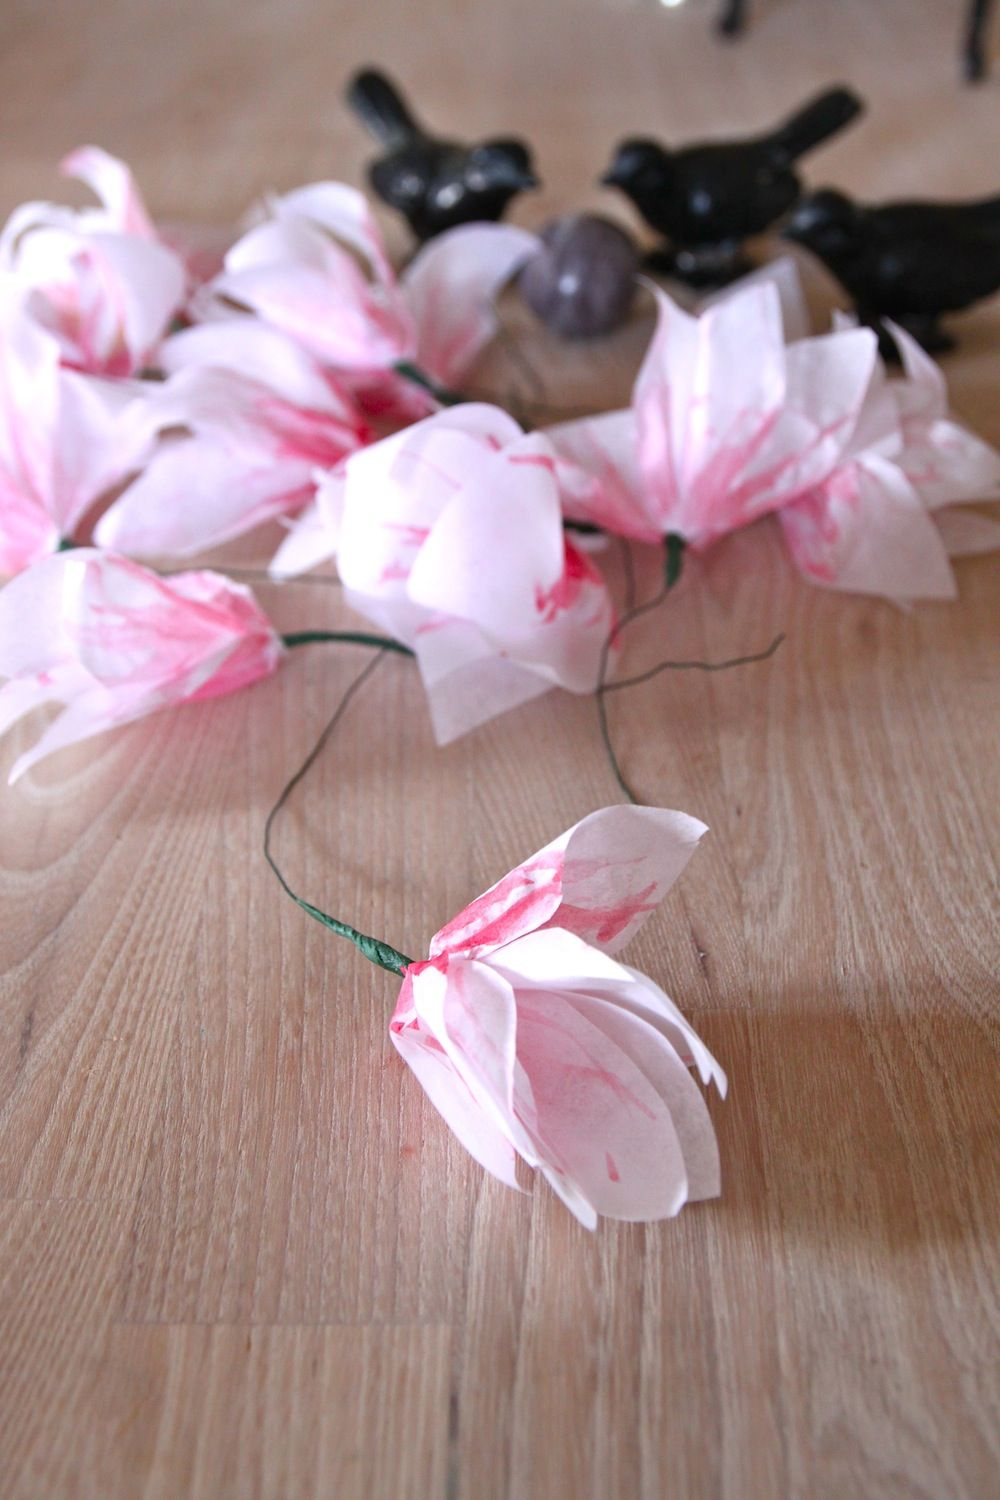 Rebecca Diy Diy Magnolia Flowers In The Paper Diy Tissue Paper